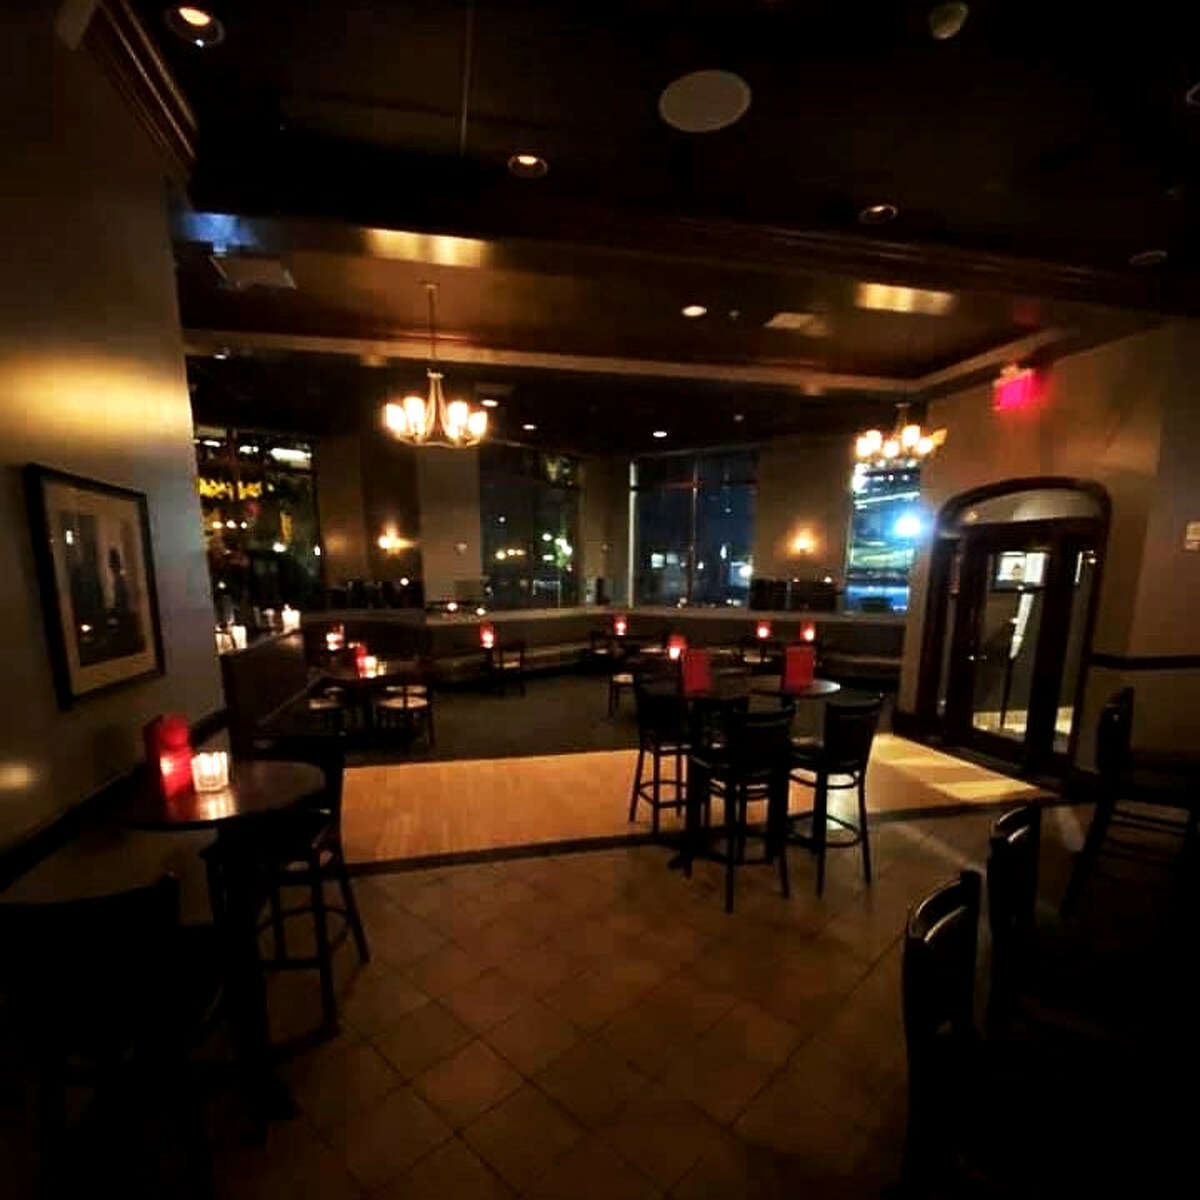 Under current New York state regulations, restaurants and bars licensed to serve alcohol must be empty of customers by 10 p.m. The New York State Restaurant Association would like the curfew extended to midnight. (Provided phot0.)